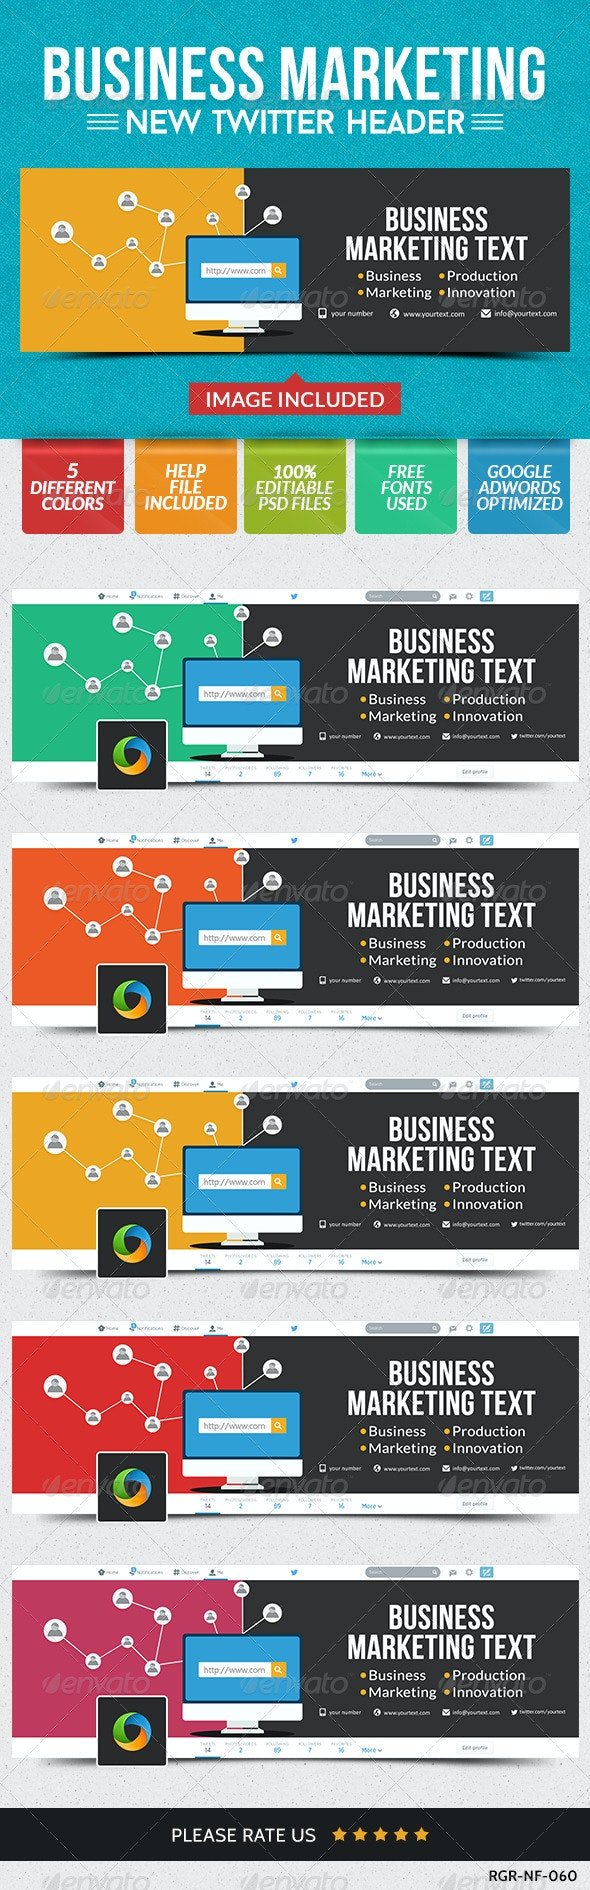 Business Twitter Headers - 5 Colors - Twitter Social Media